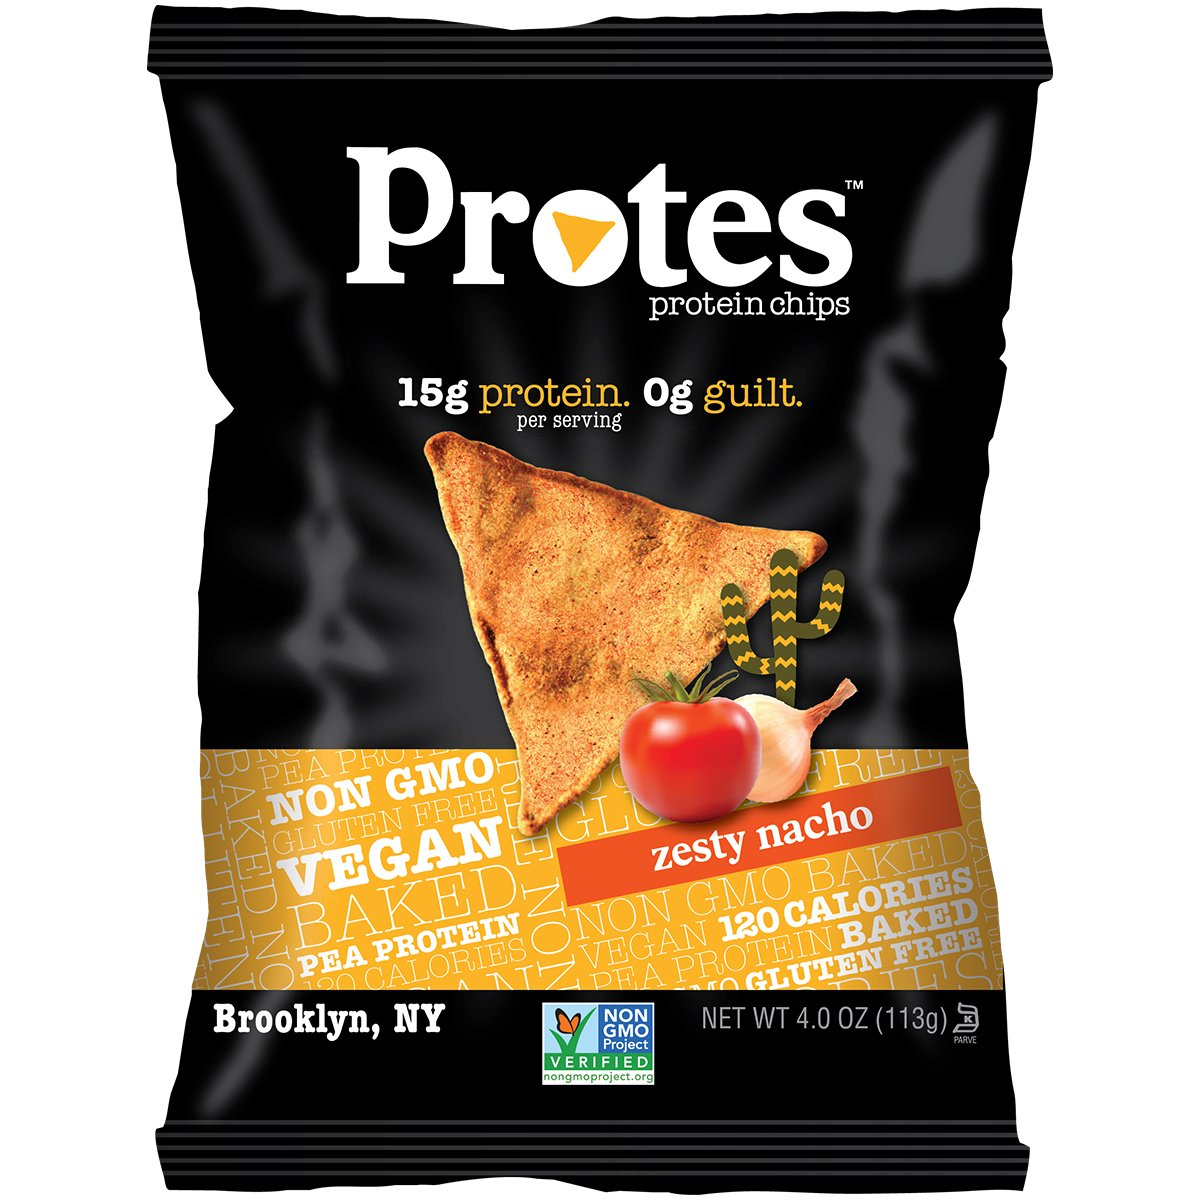 PROTES Vegan Baked Protein Chips | 6 Bags (4 oz.) | 15G of Protein, 120 Calories & Made with Pea Protein | Non GMO & Gluten Free | (Zesty Nacho)